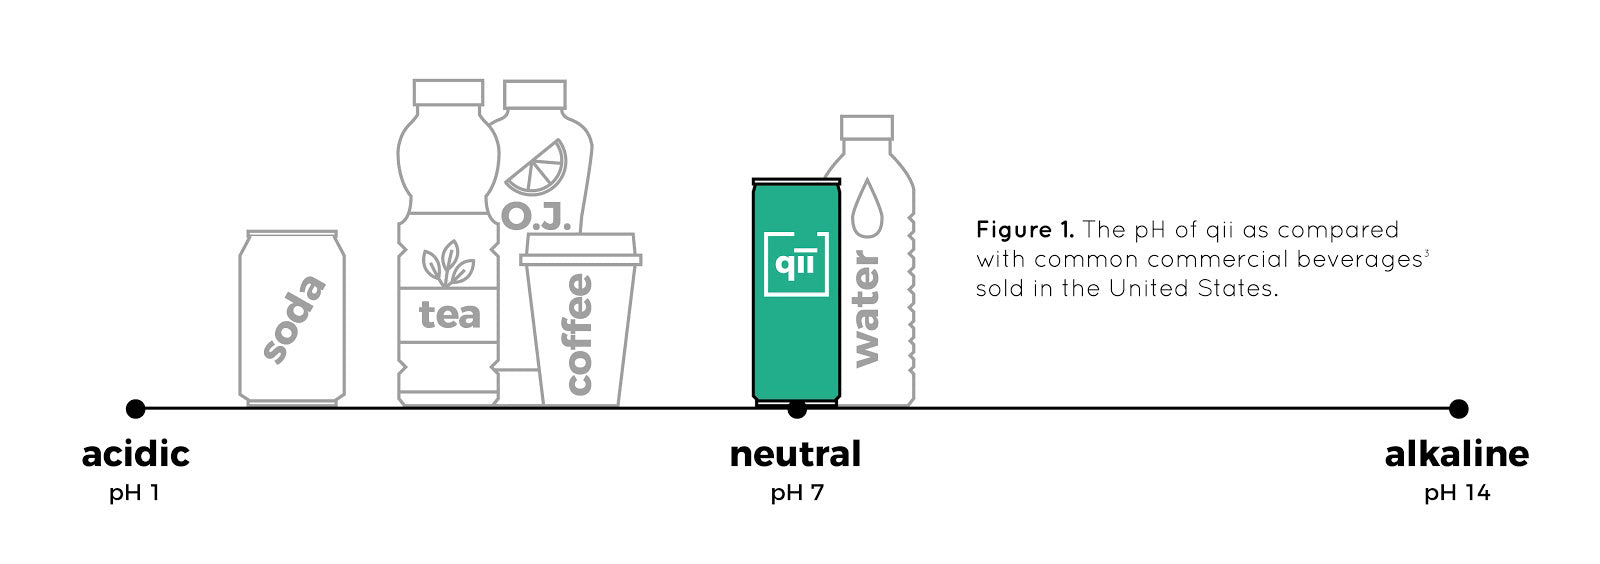 qii - How It Works - pH Levels